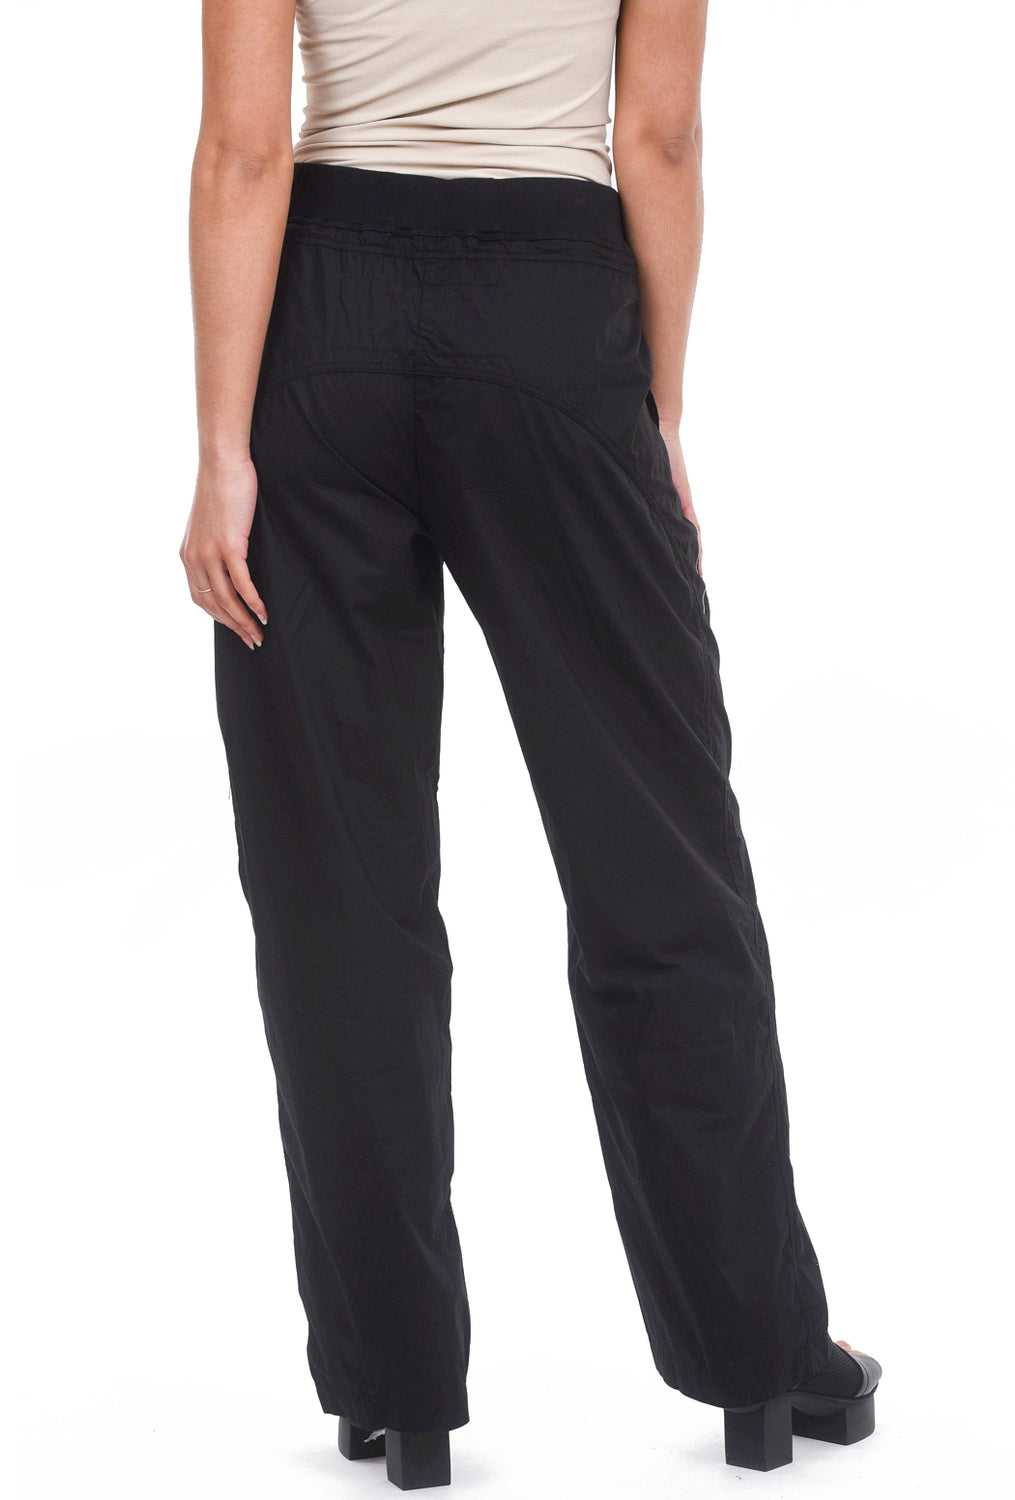 Rundholz Black Label Kate Poplin Pants, Black